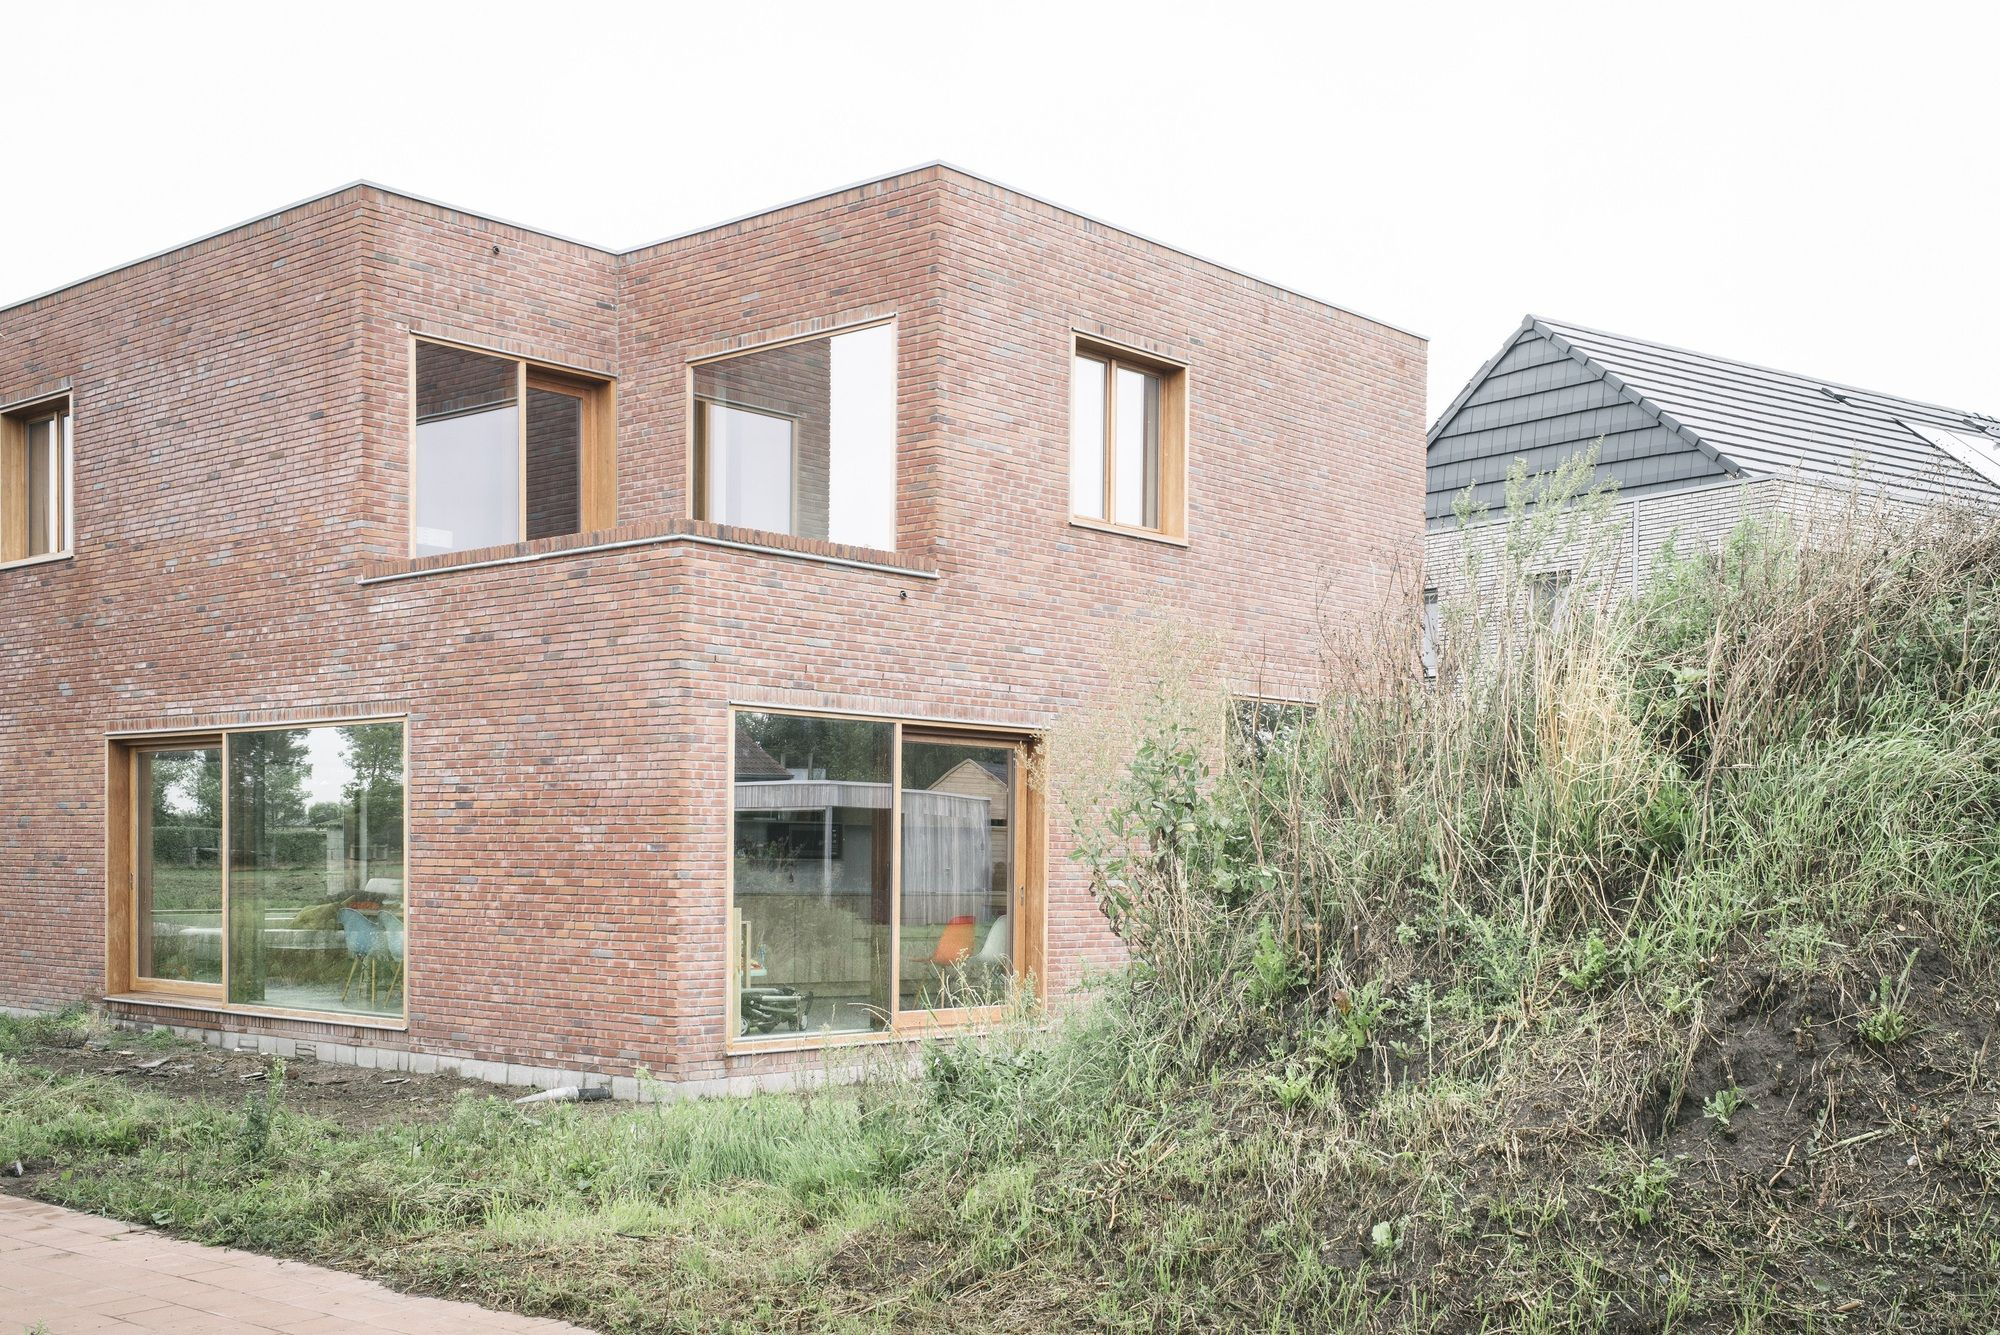 Image 1 of 15 from gallery of House CM / Bultynck Kindt architecten. Photograph by studiowunderkammer.be